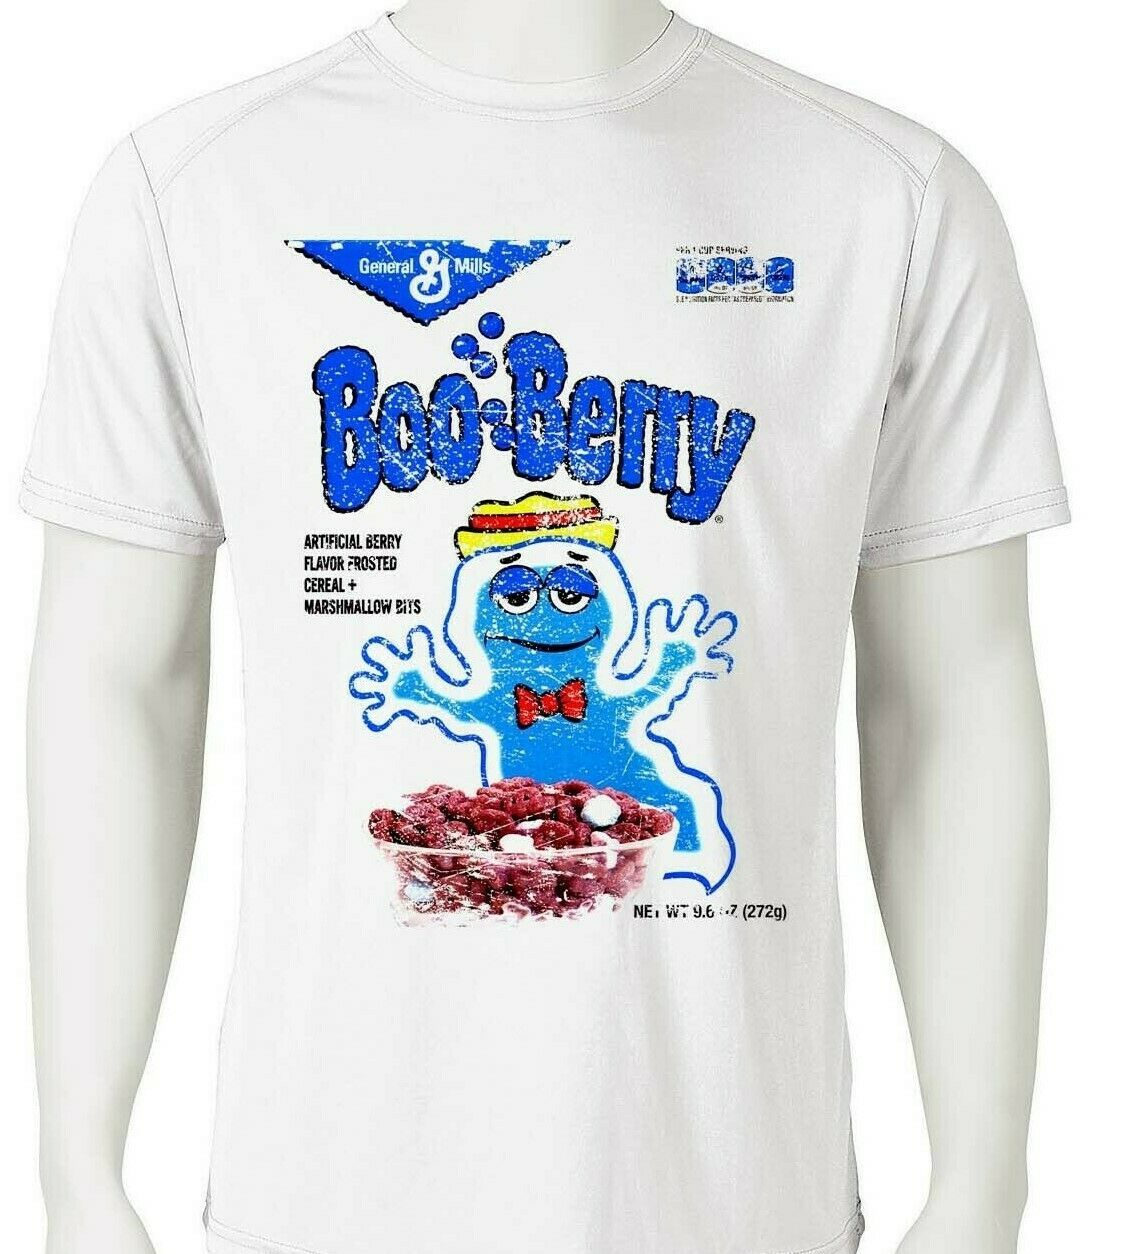 Boo Berry Dri Fit graphic T-shirt moisture wicking monster cereal retro SPF tee